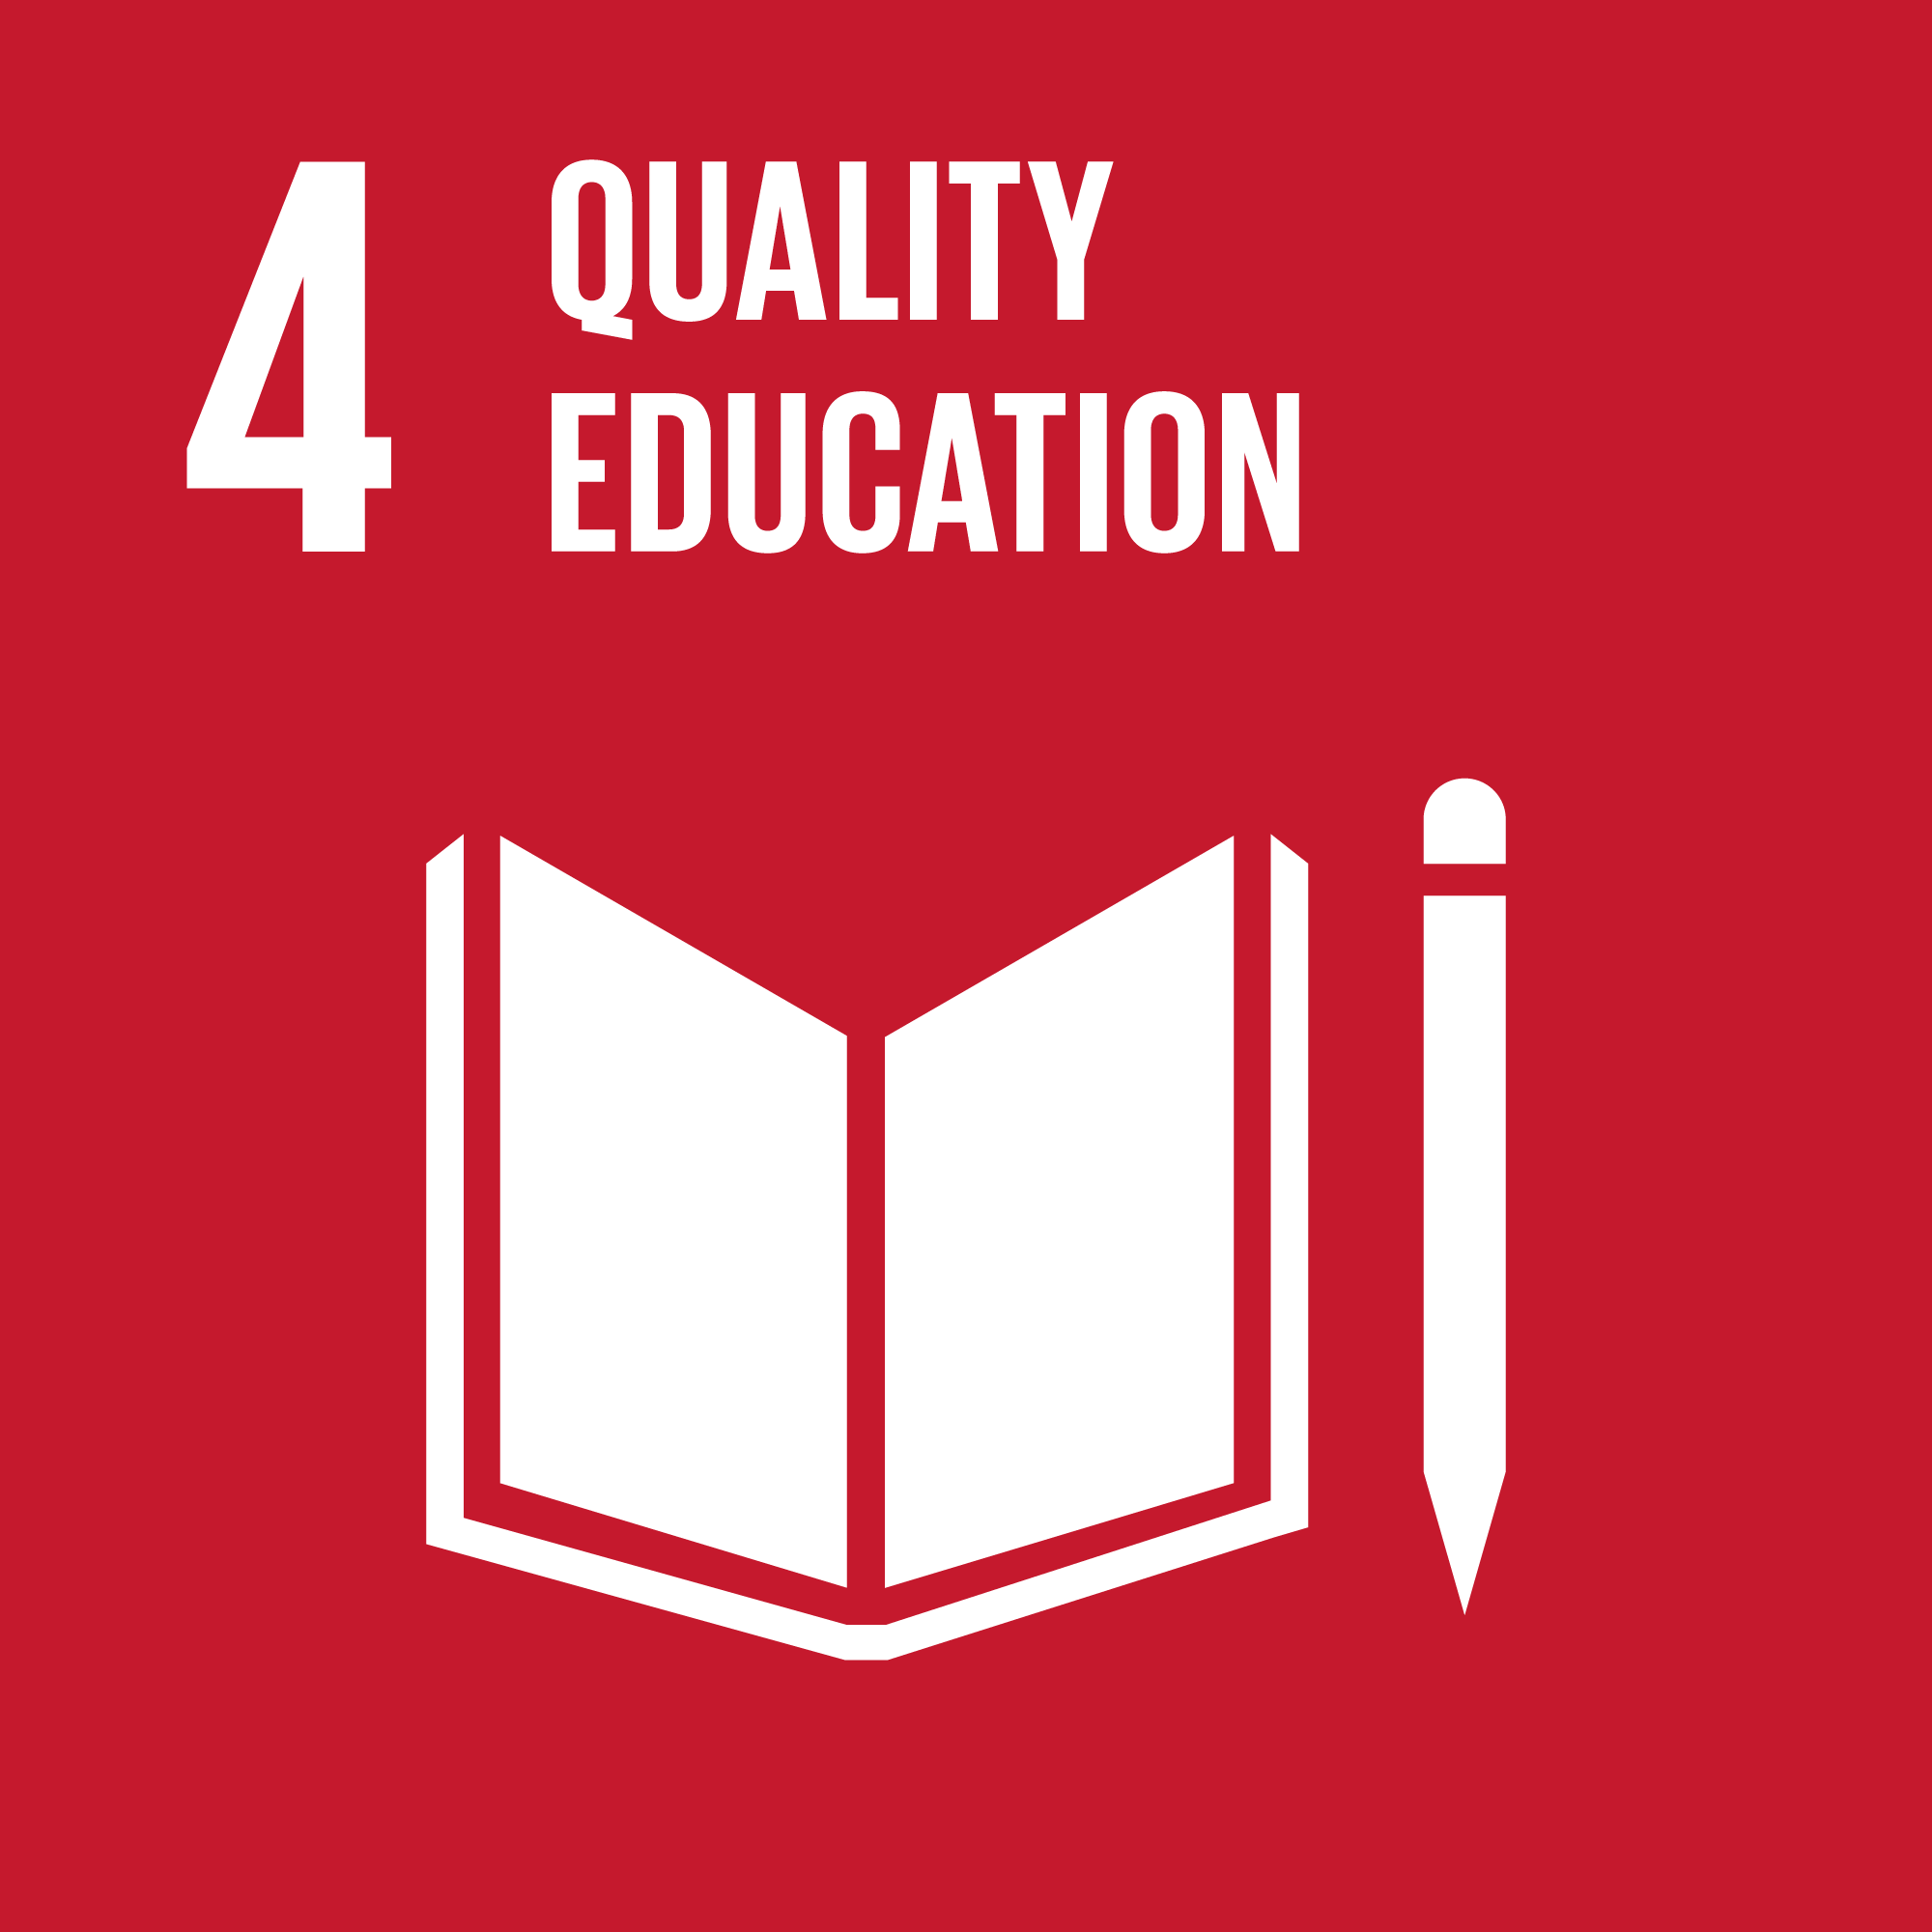 Sustainable Development Goal 4: Quality Education